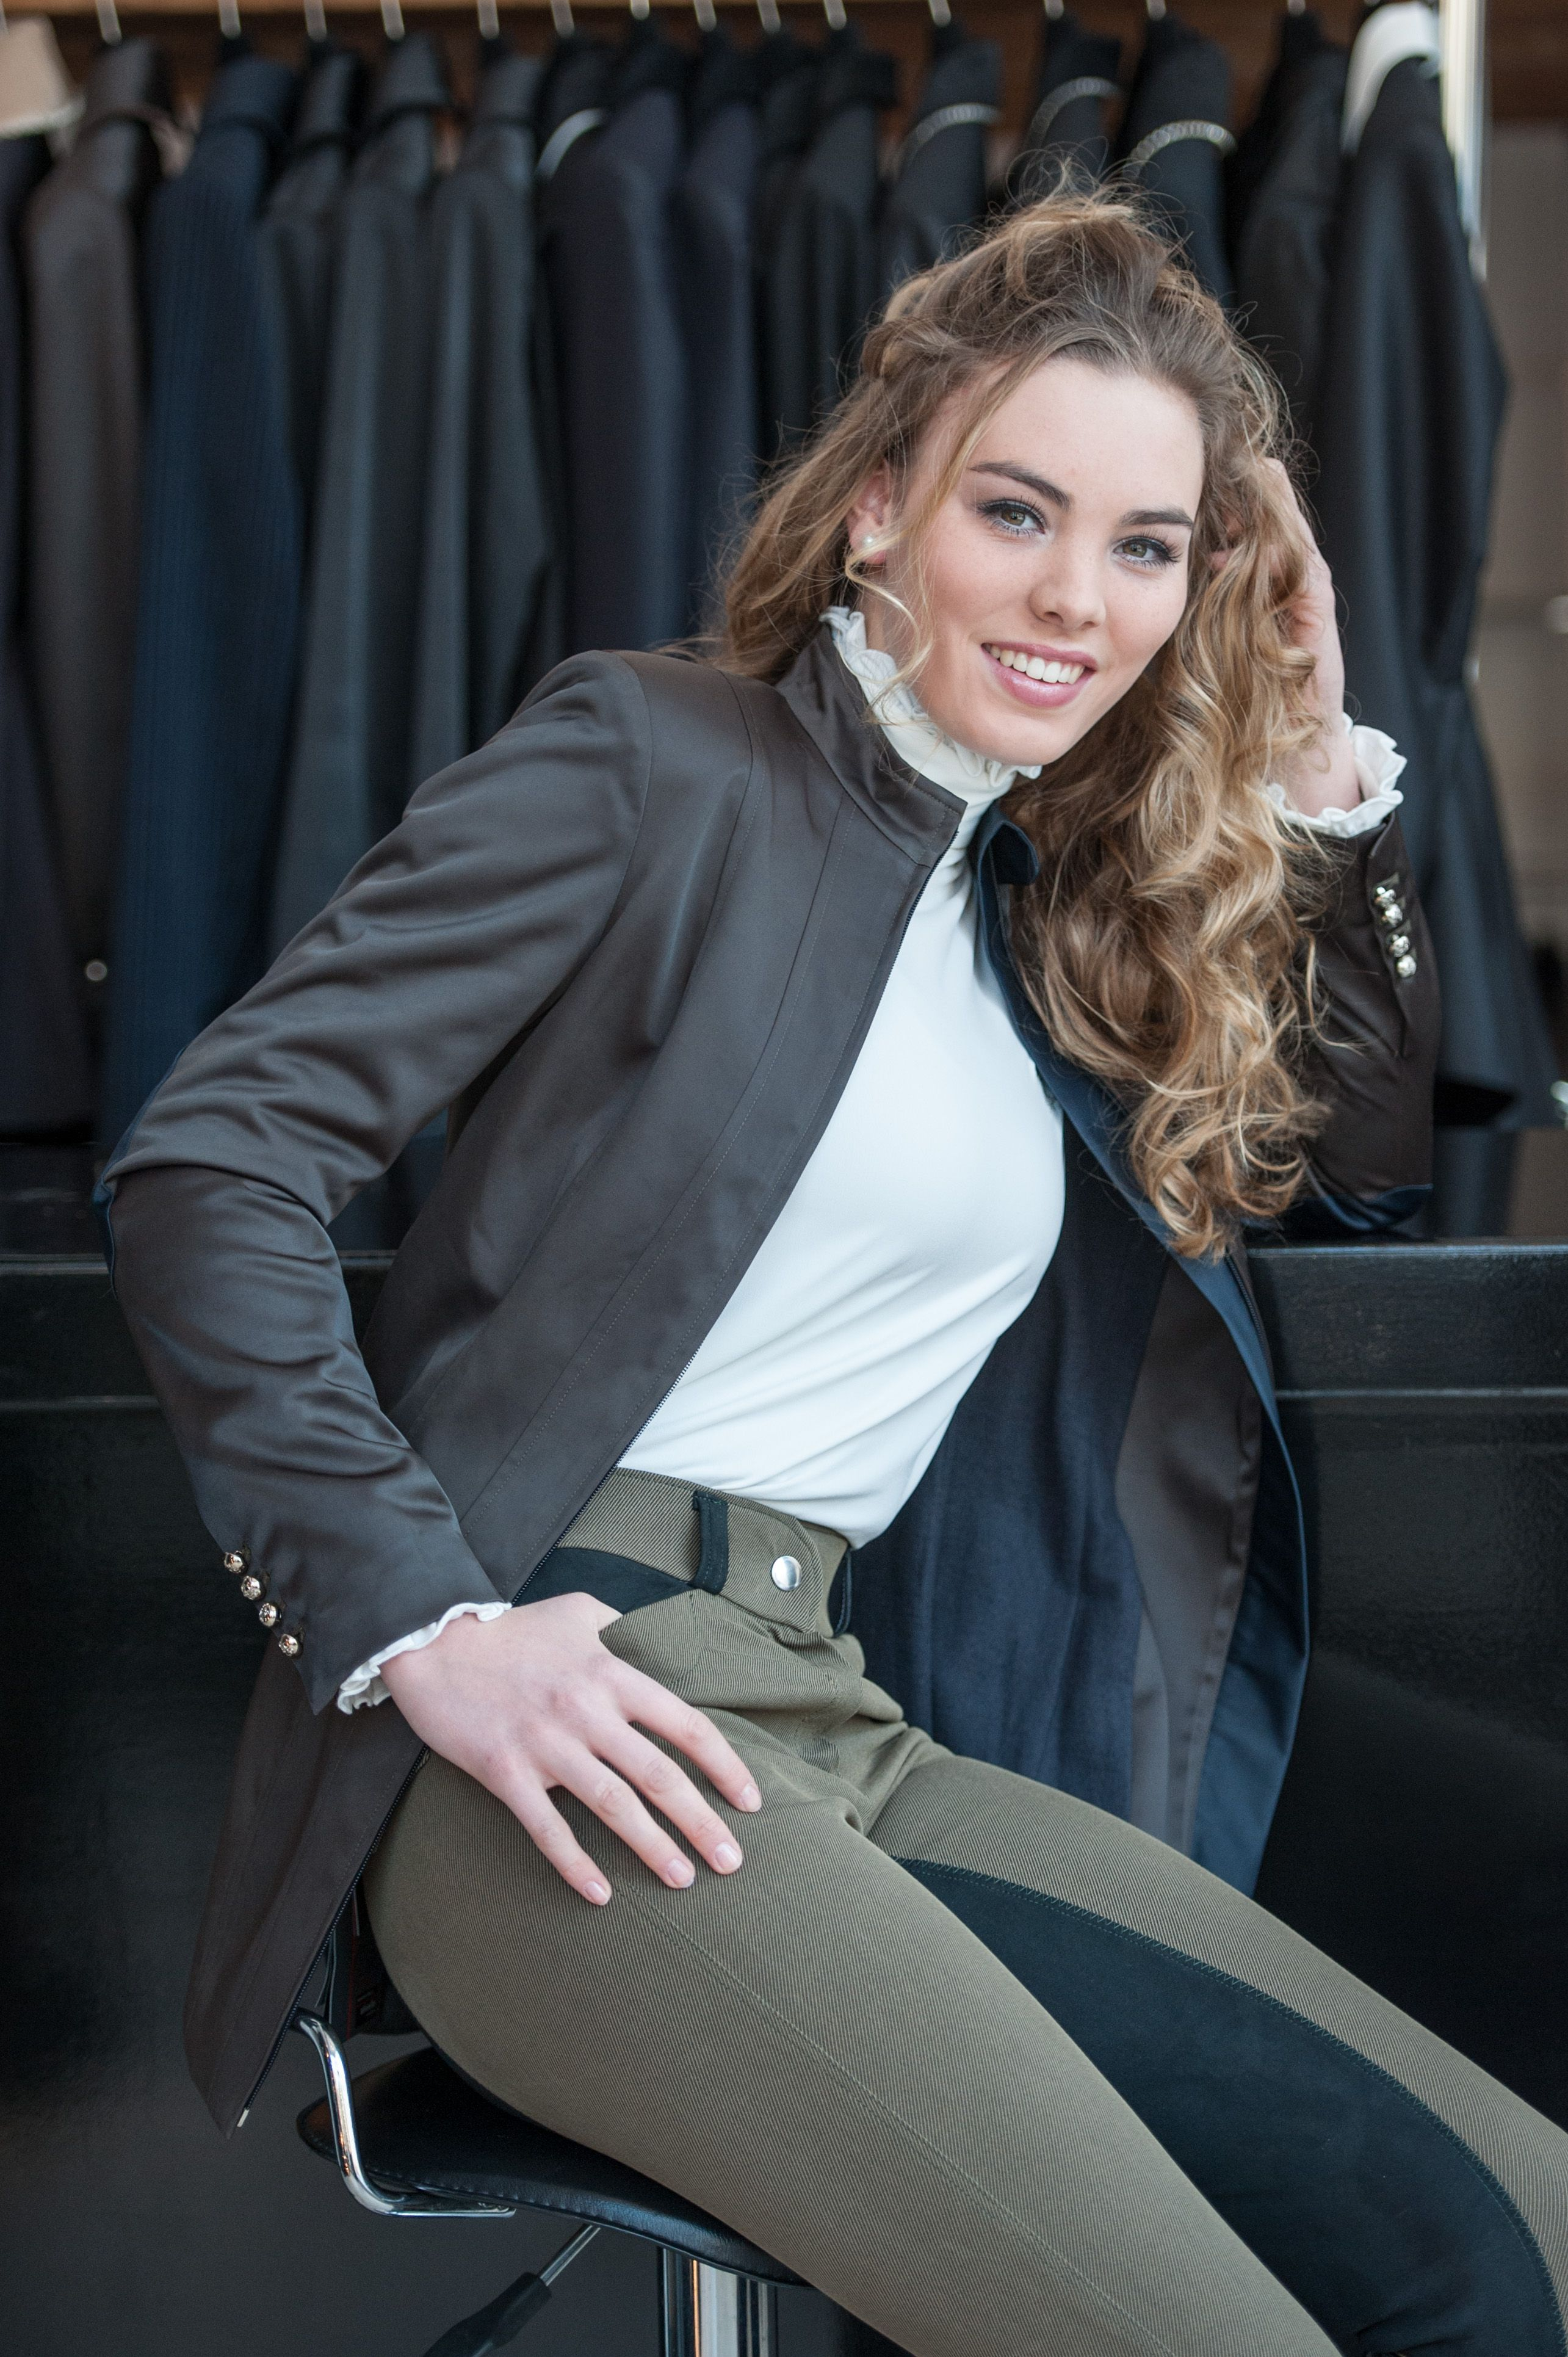 #womancouture   Style   Pinterest   Equestrian outfits ...